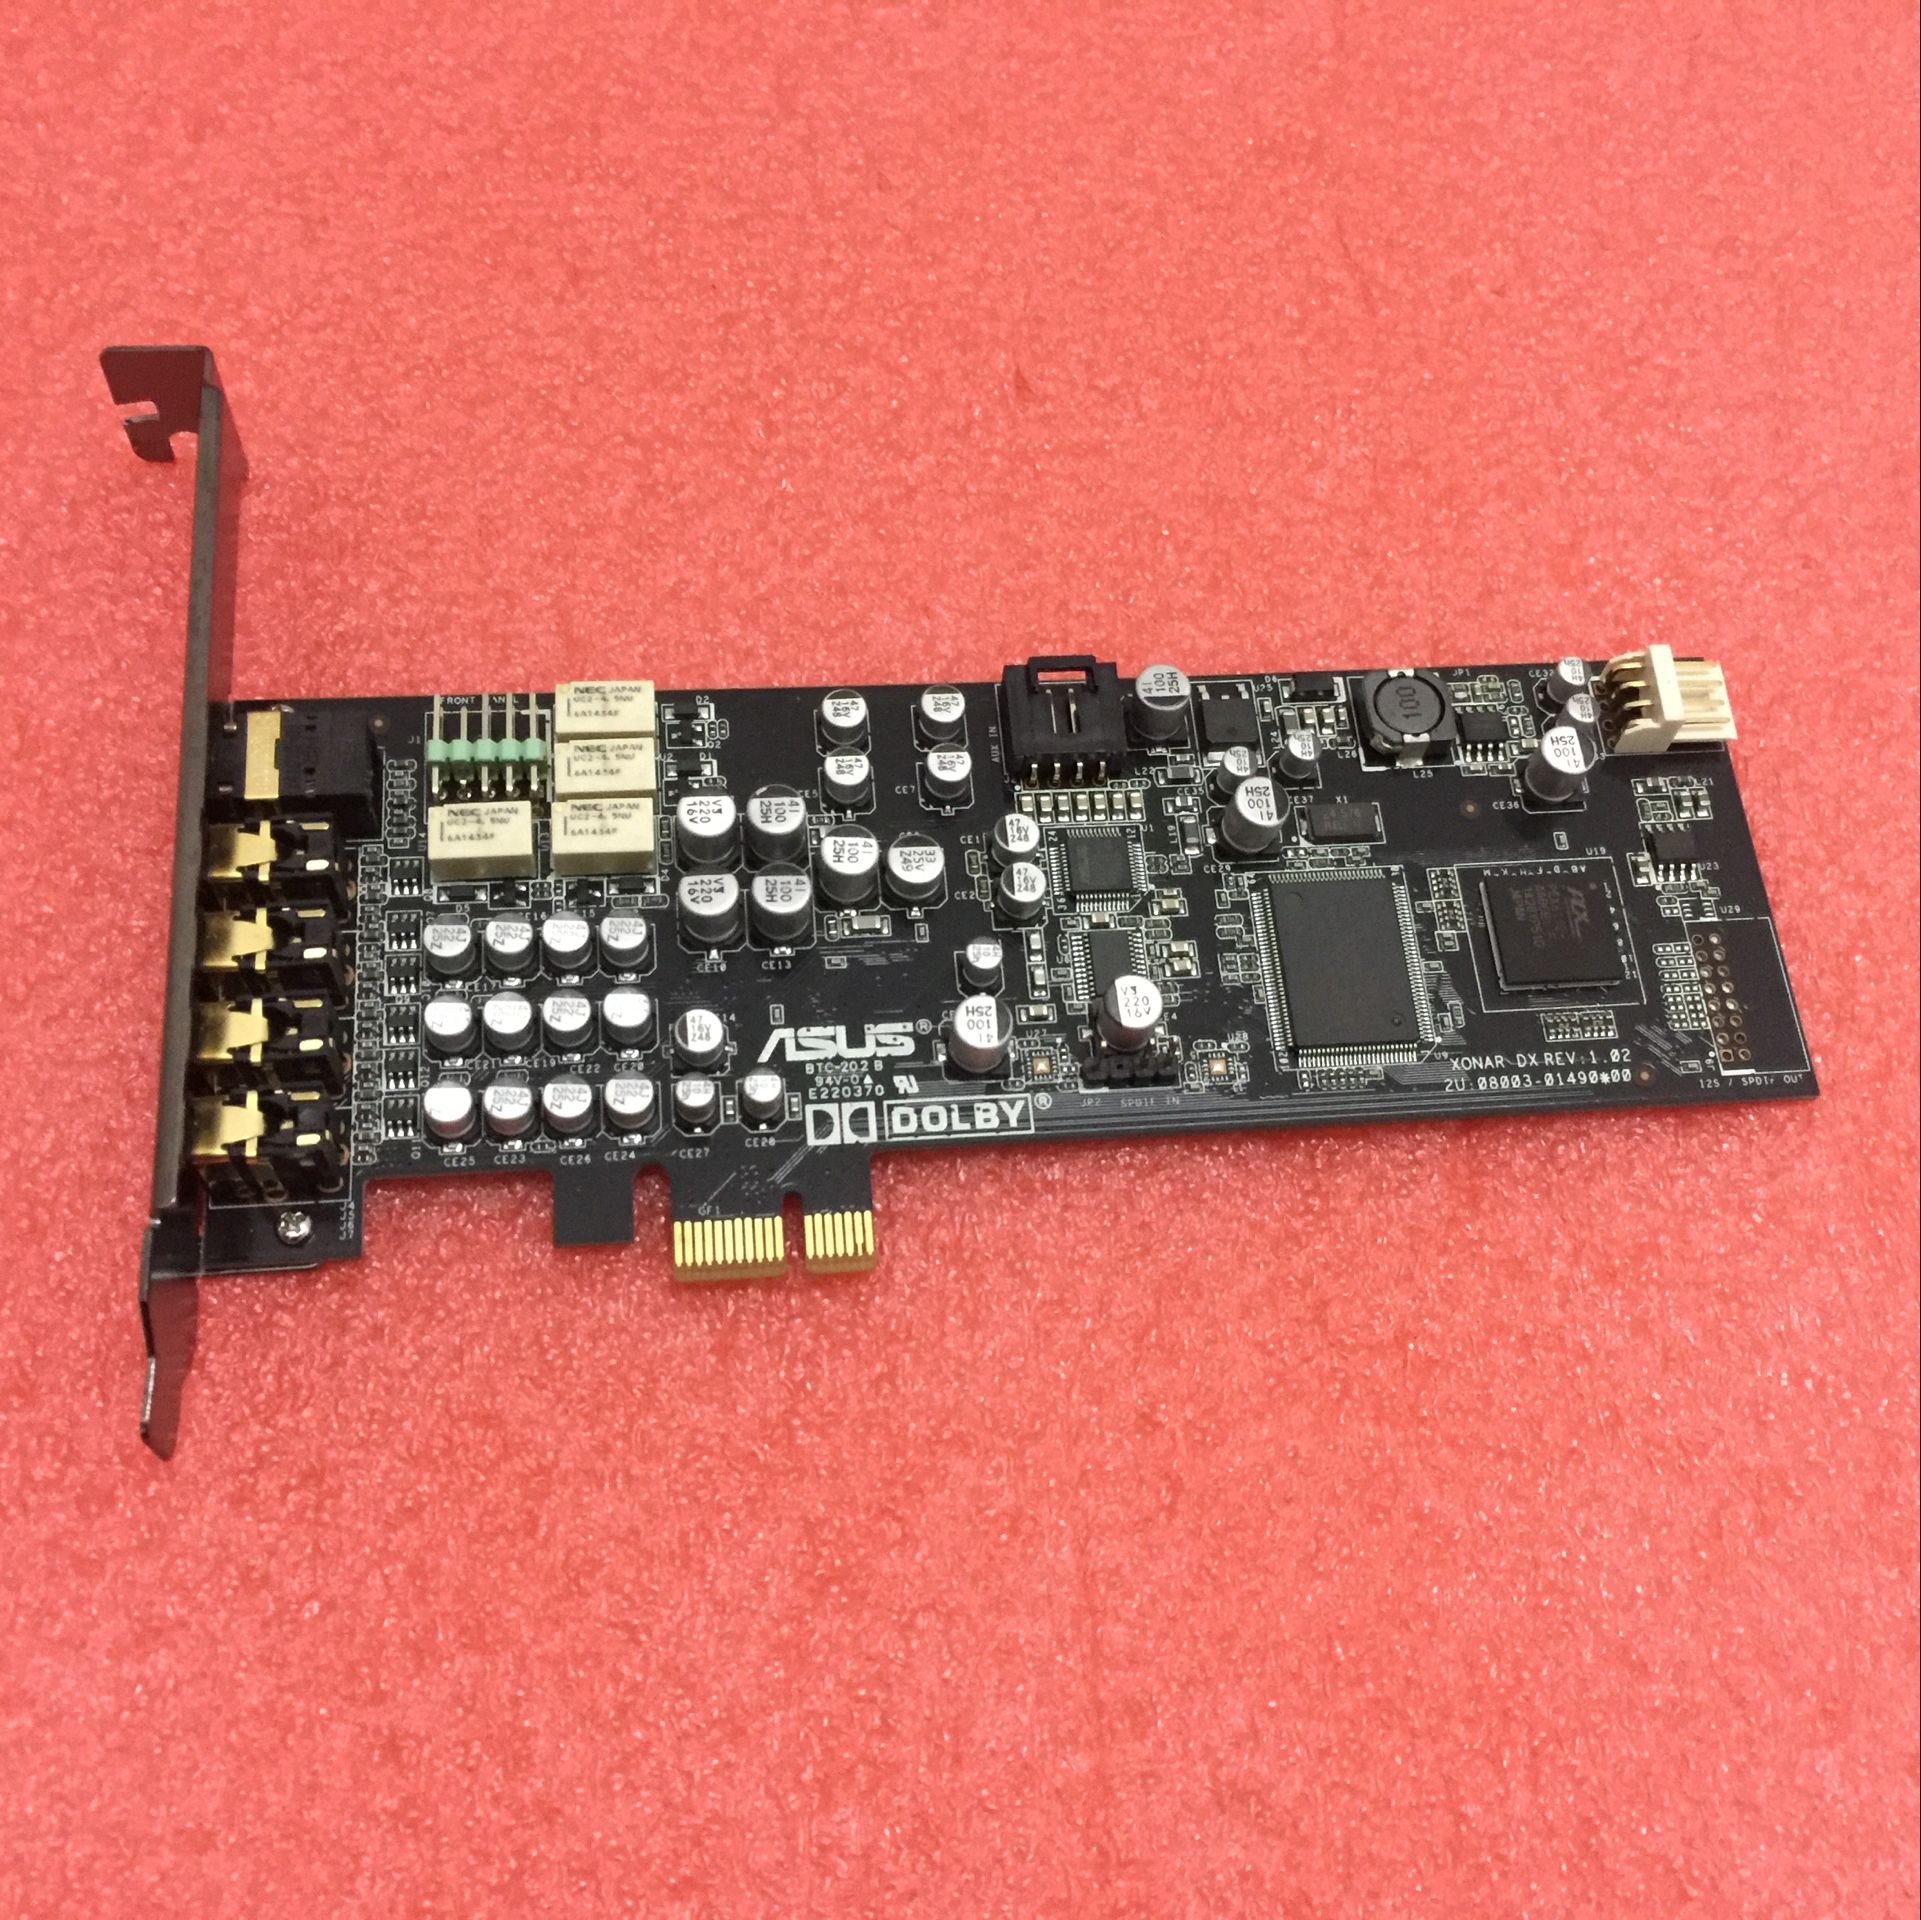 Asus Xonar DX Built-in 7.1 Sound Card PCI-E Half-High DTS Dolby Surround HIFI Sound Card 90%new